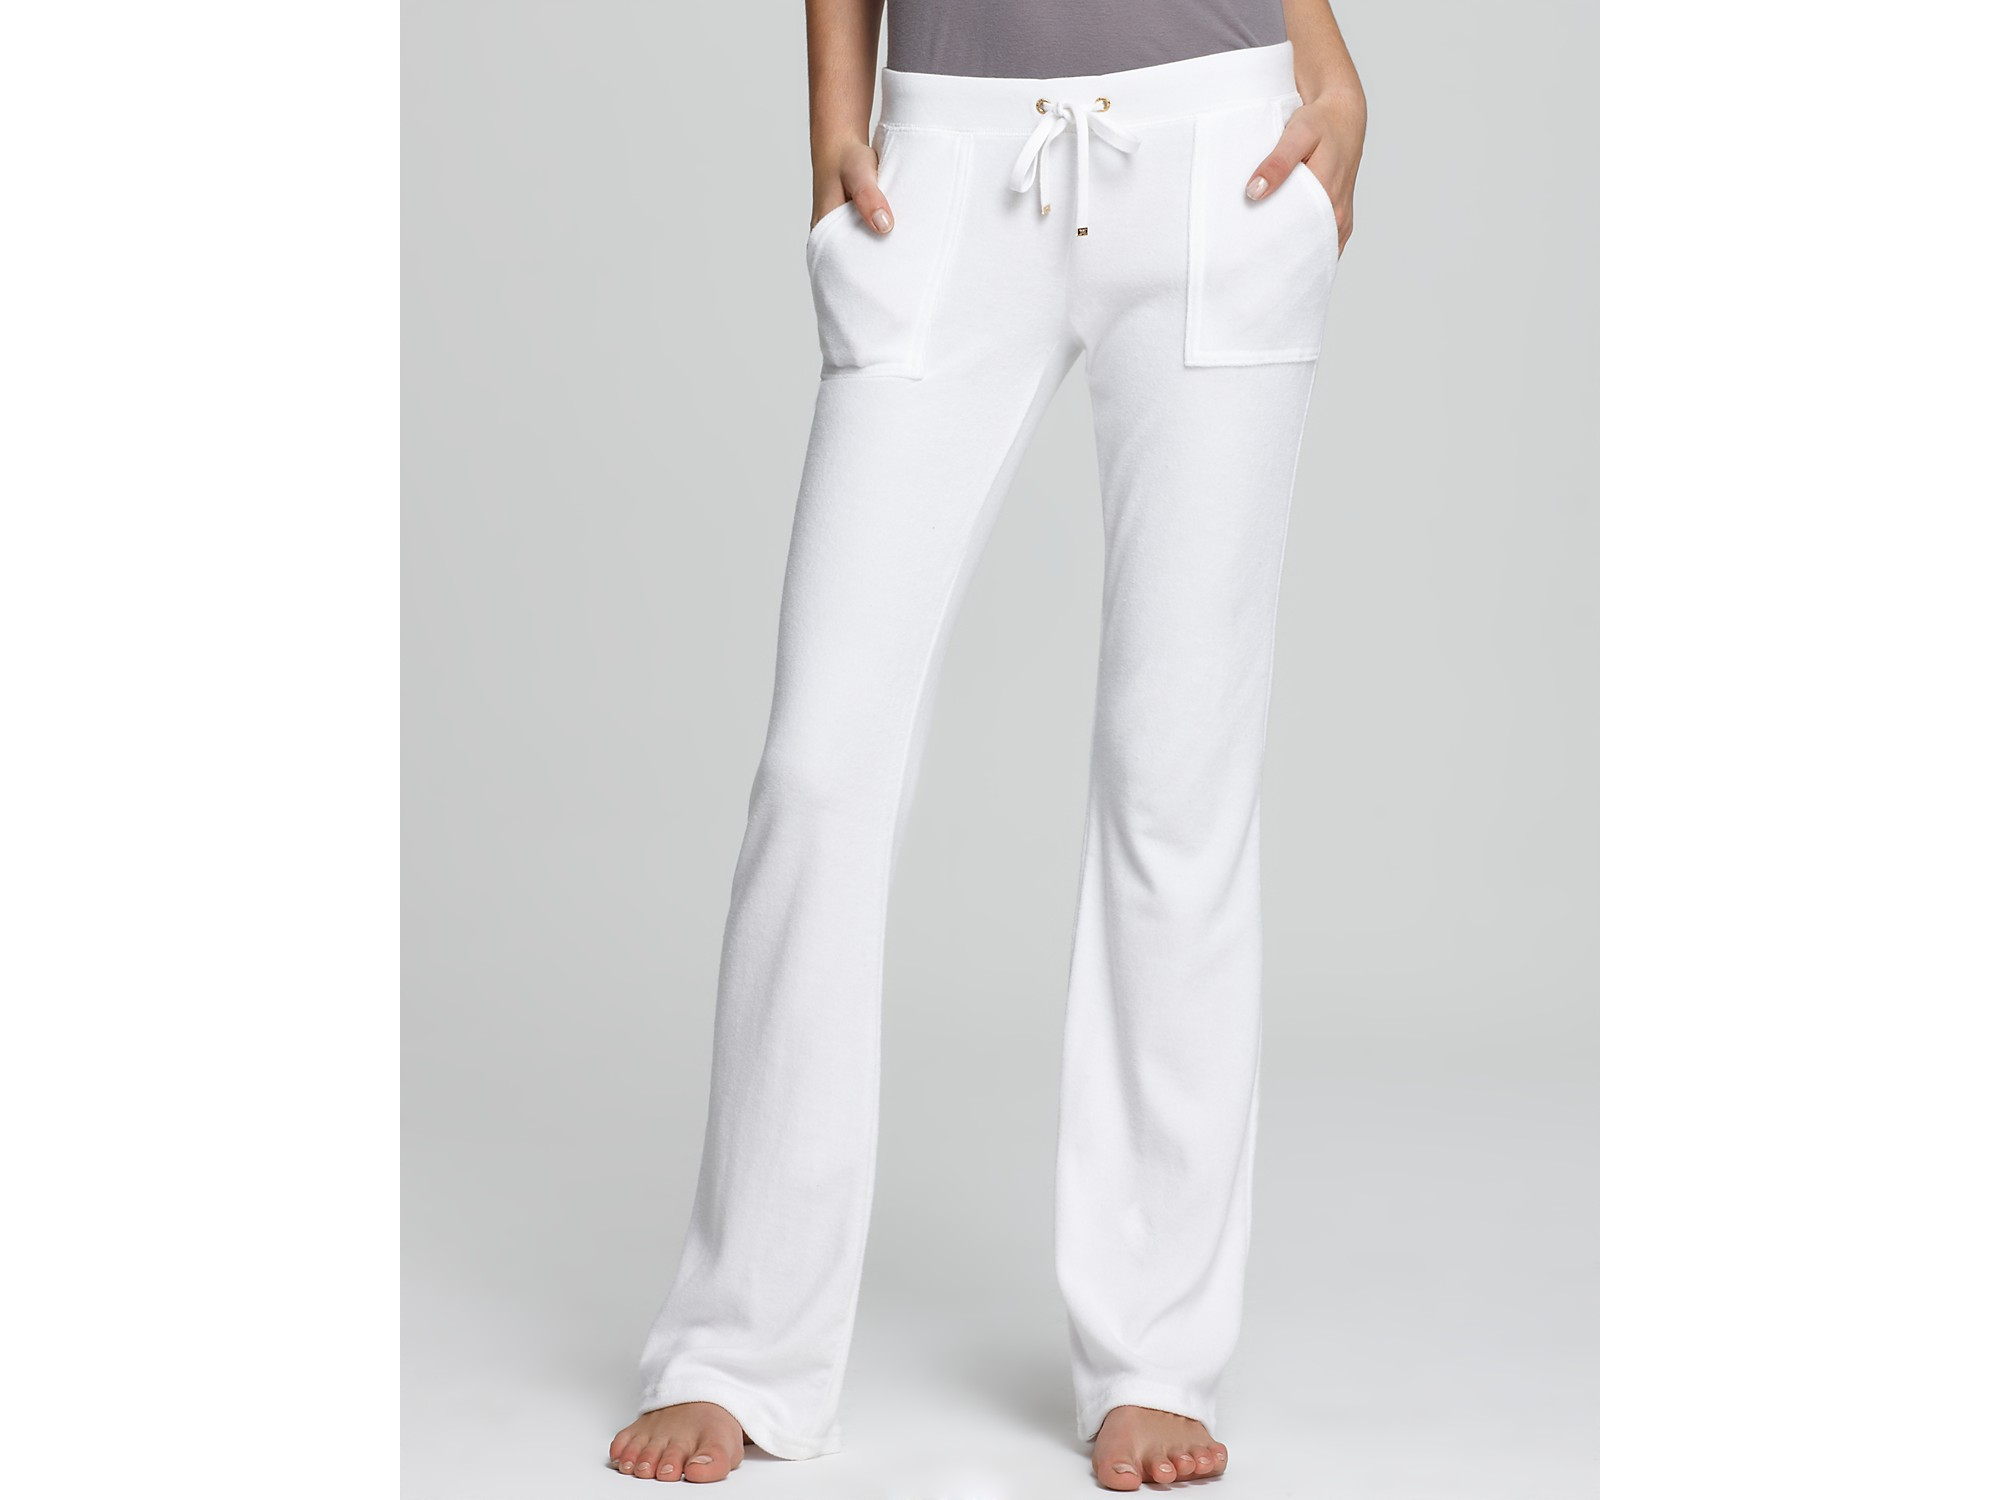 Juicy couture Terry Flare Leg Pants in White | Lyst